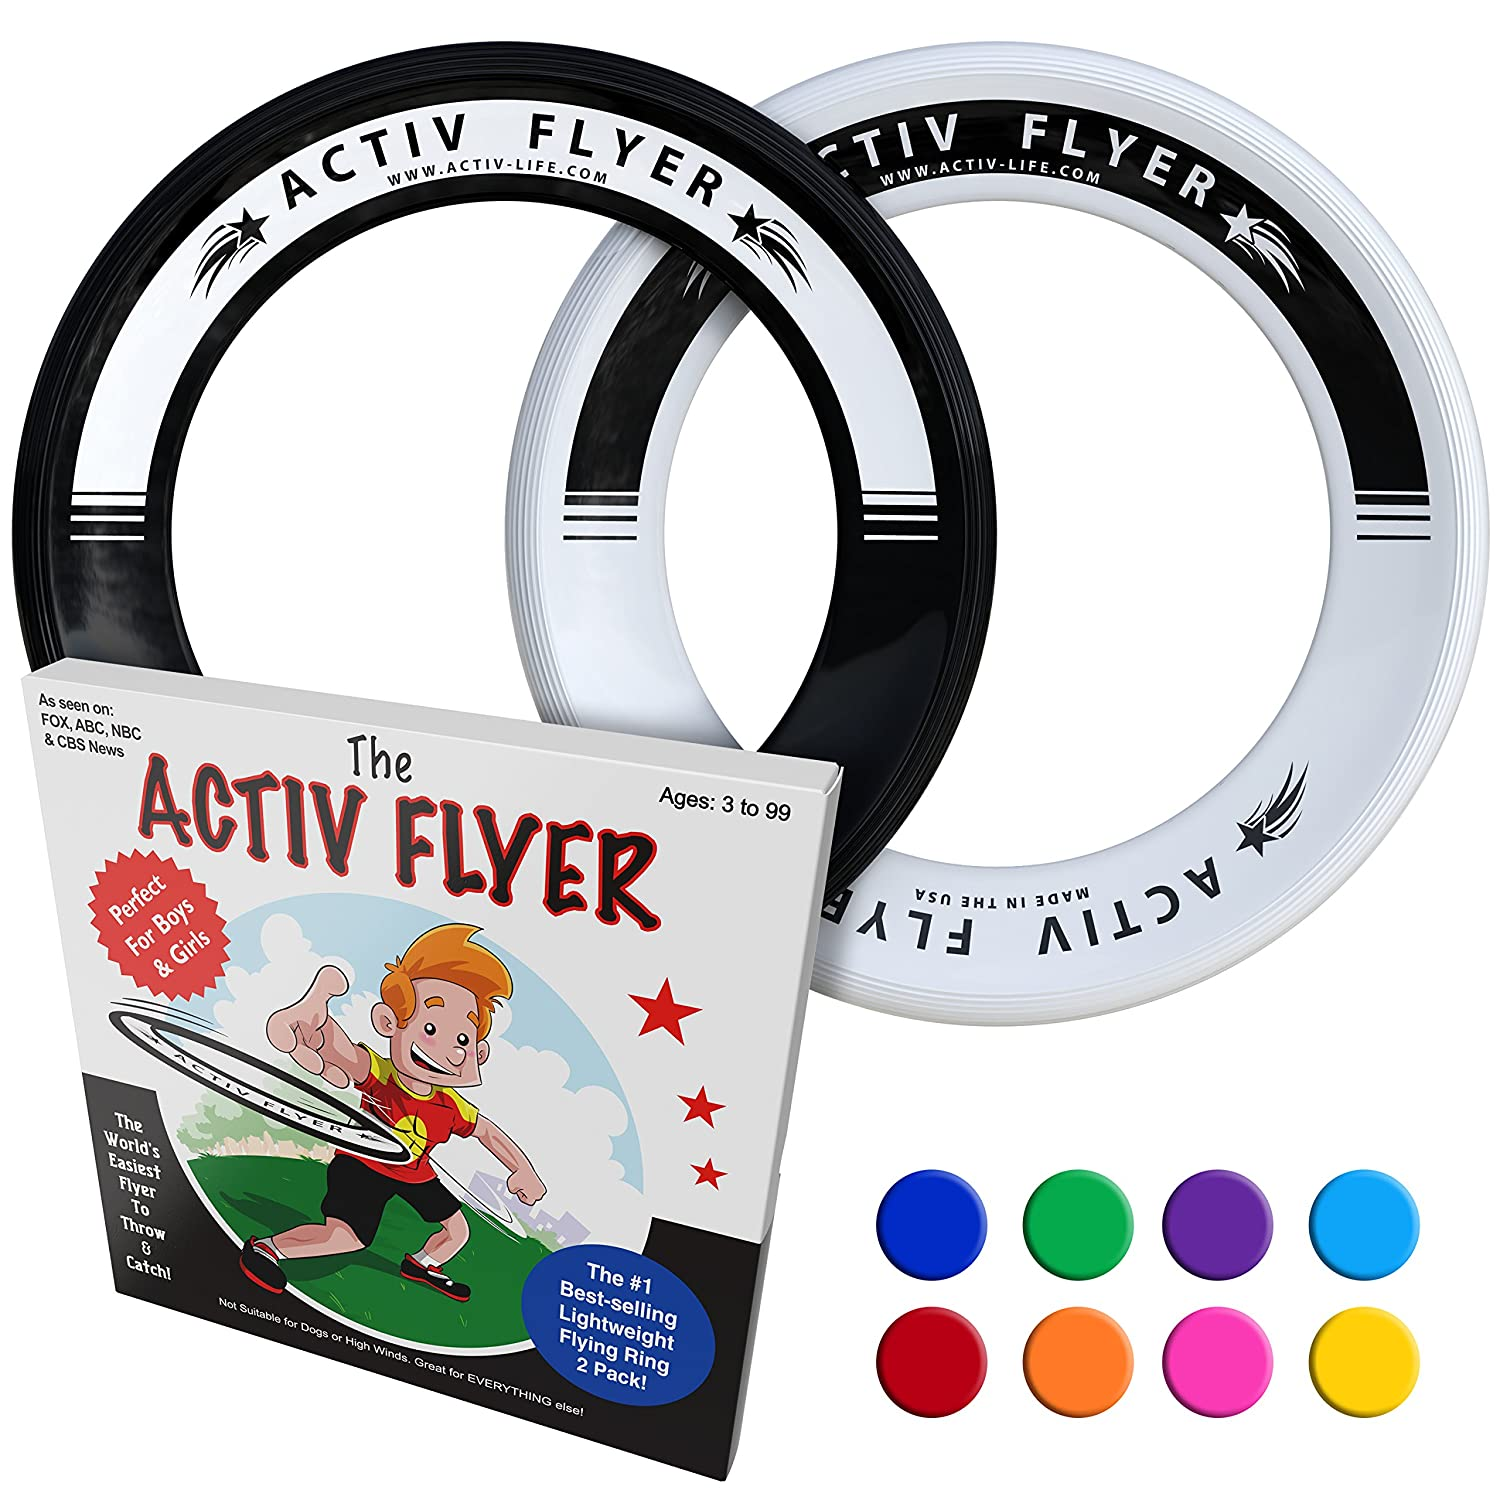 c32761c535de Activ Life Best Kid s Flying Rings  2 Pack  Fly Straight   Don t Hurt - 80%  Lighter Than Standard Flying Discs - Replace Screen Time with Healthy  Family Fun ...